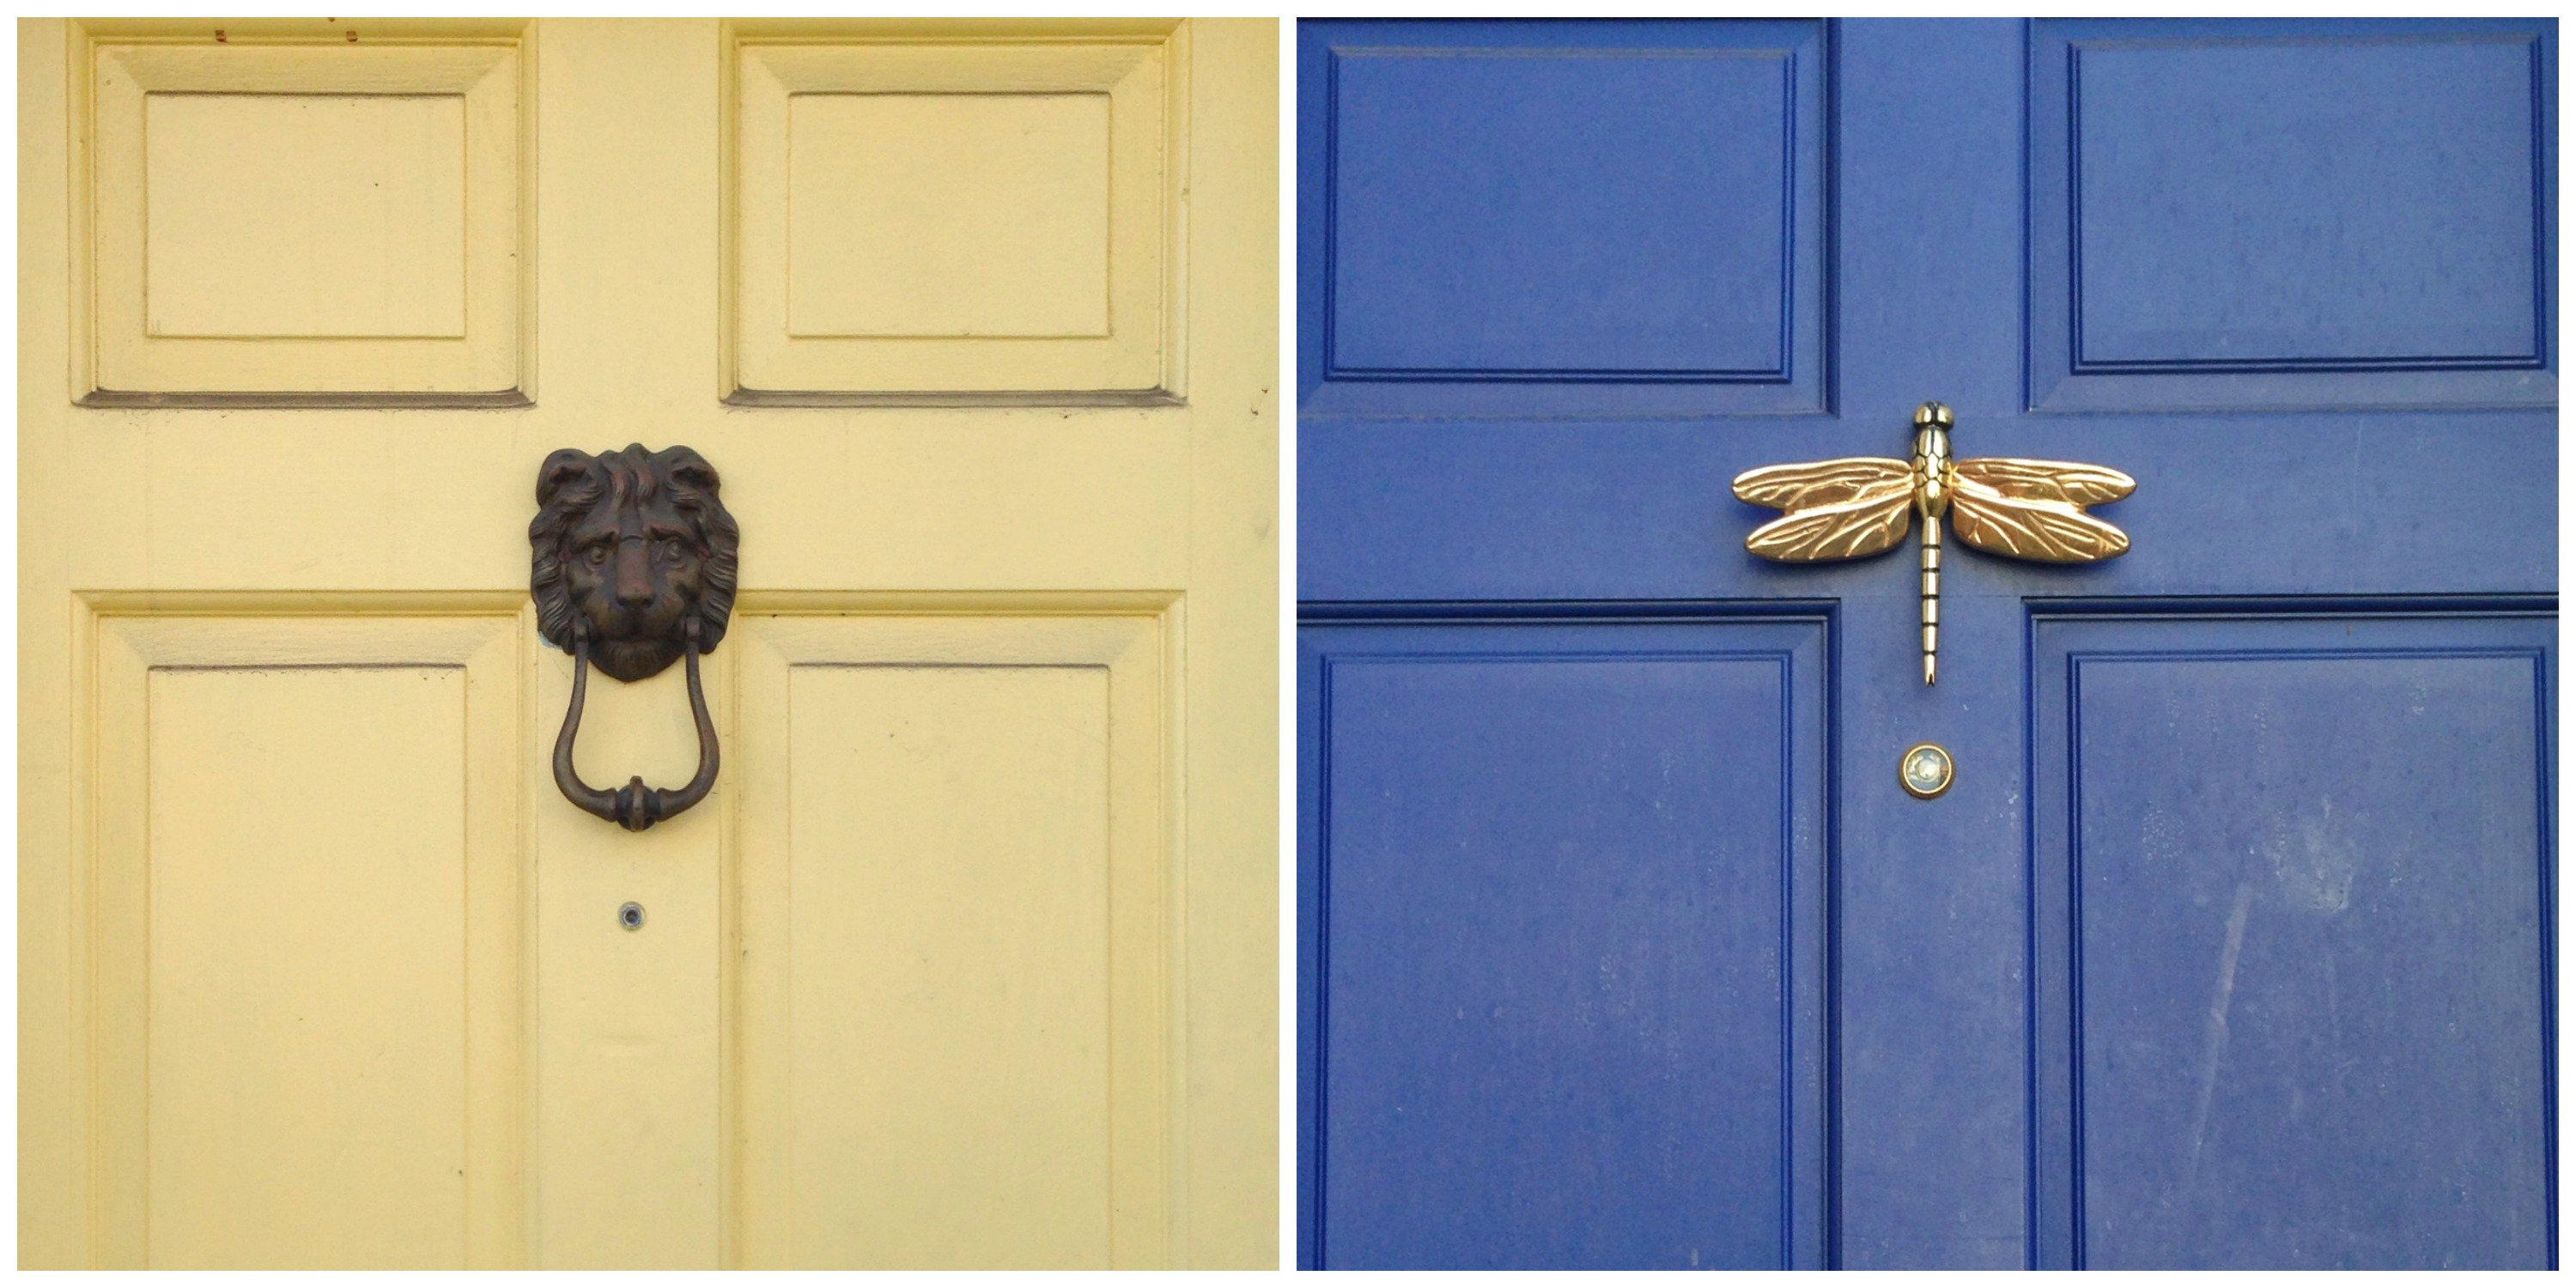 Delicieux To Update Your Door, Choose Your Favorite Color Paint, Give Your Door A  Good Sanding And Paint With A Quality Outdoor Semi Gloss Paint.